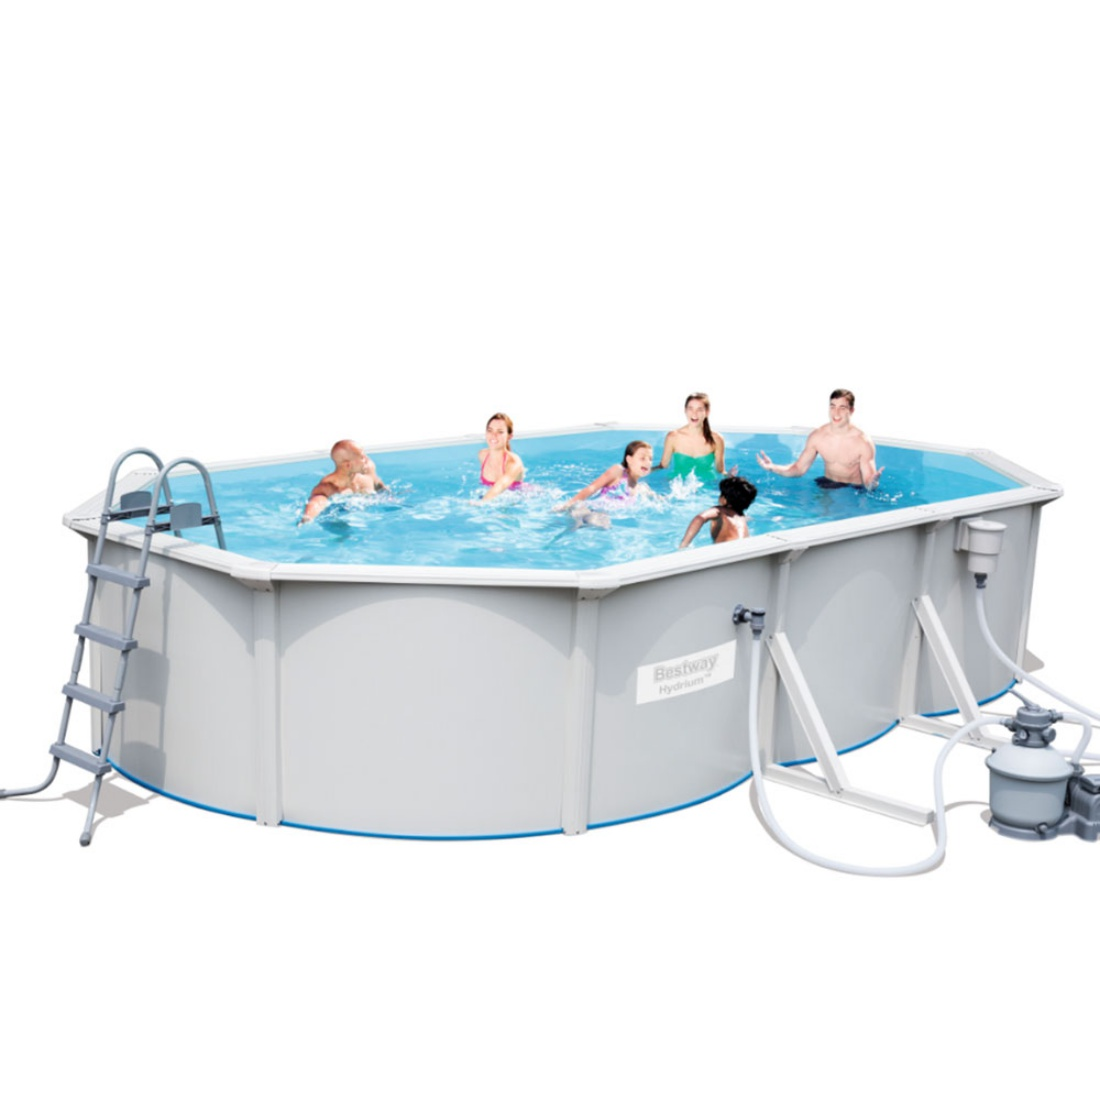 Bestway Hydrium™ - Rectangle 6.1m x 3.6m Above Ground Pool - With Filter Kit